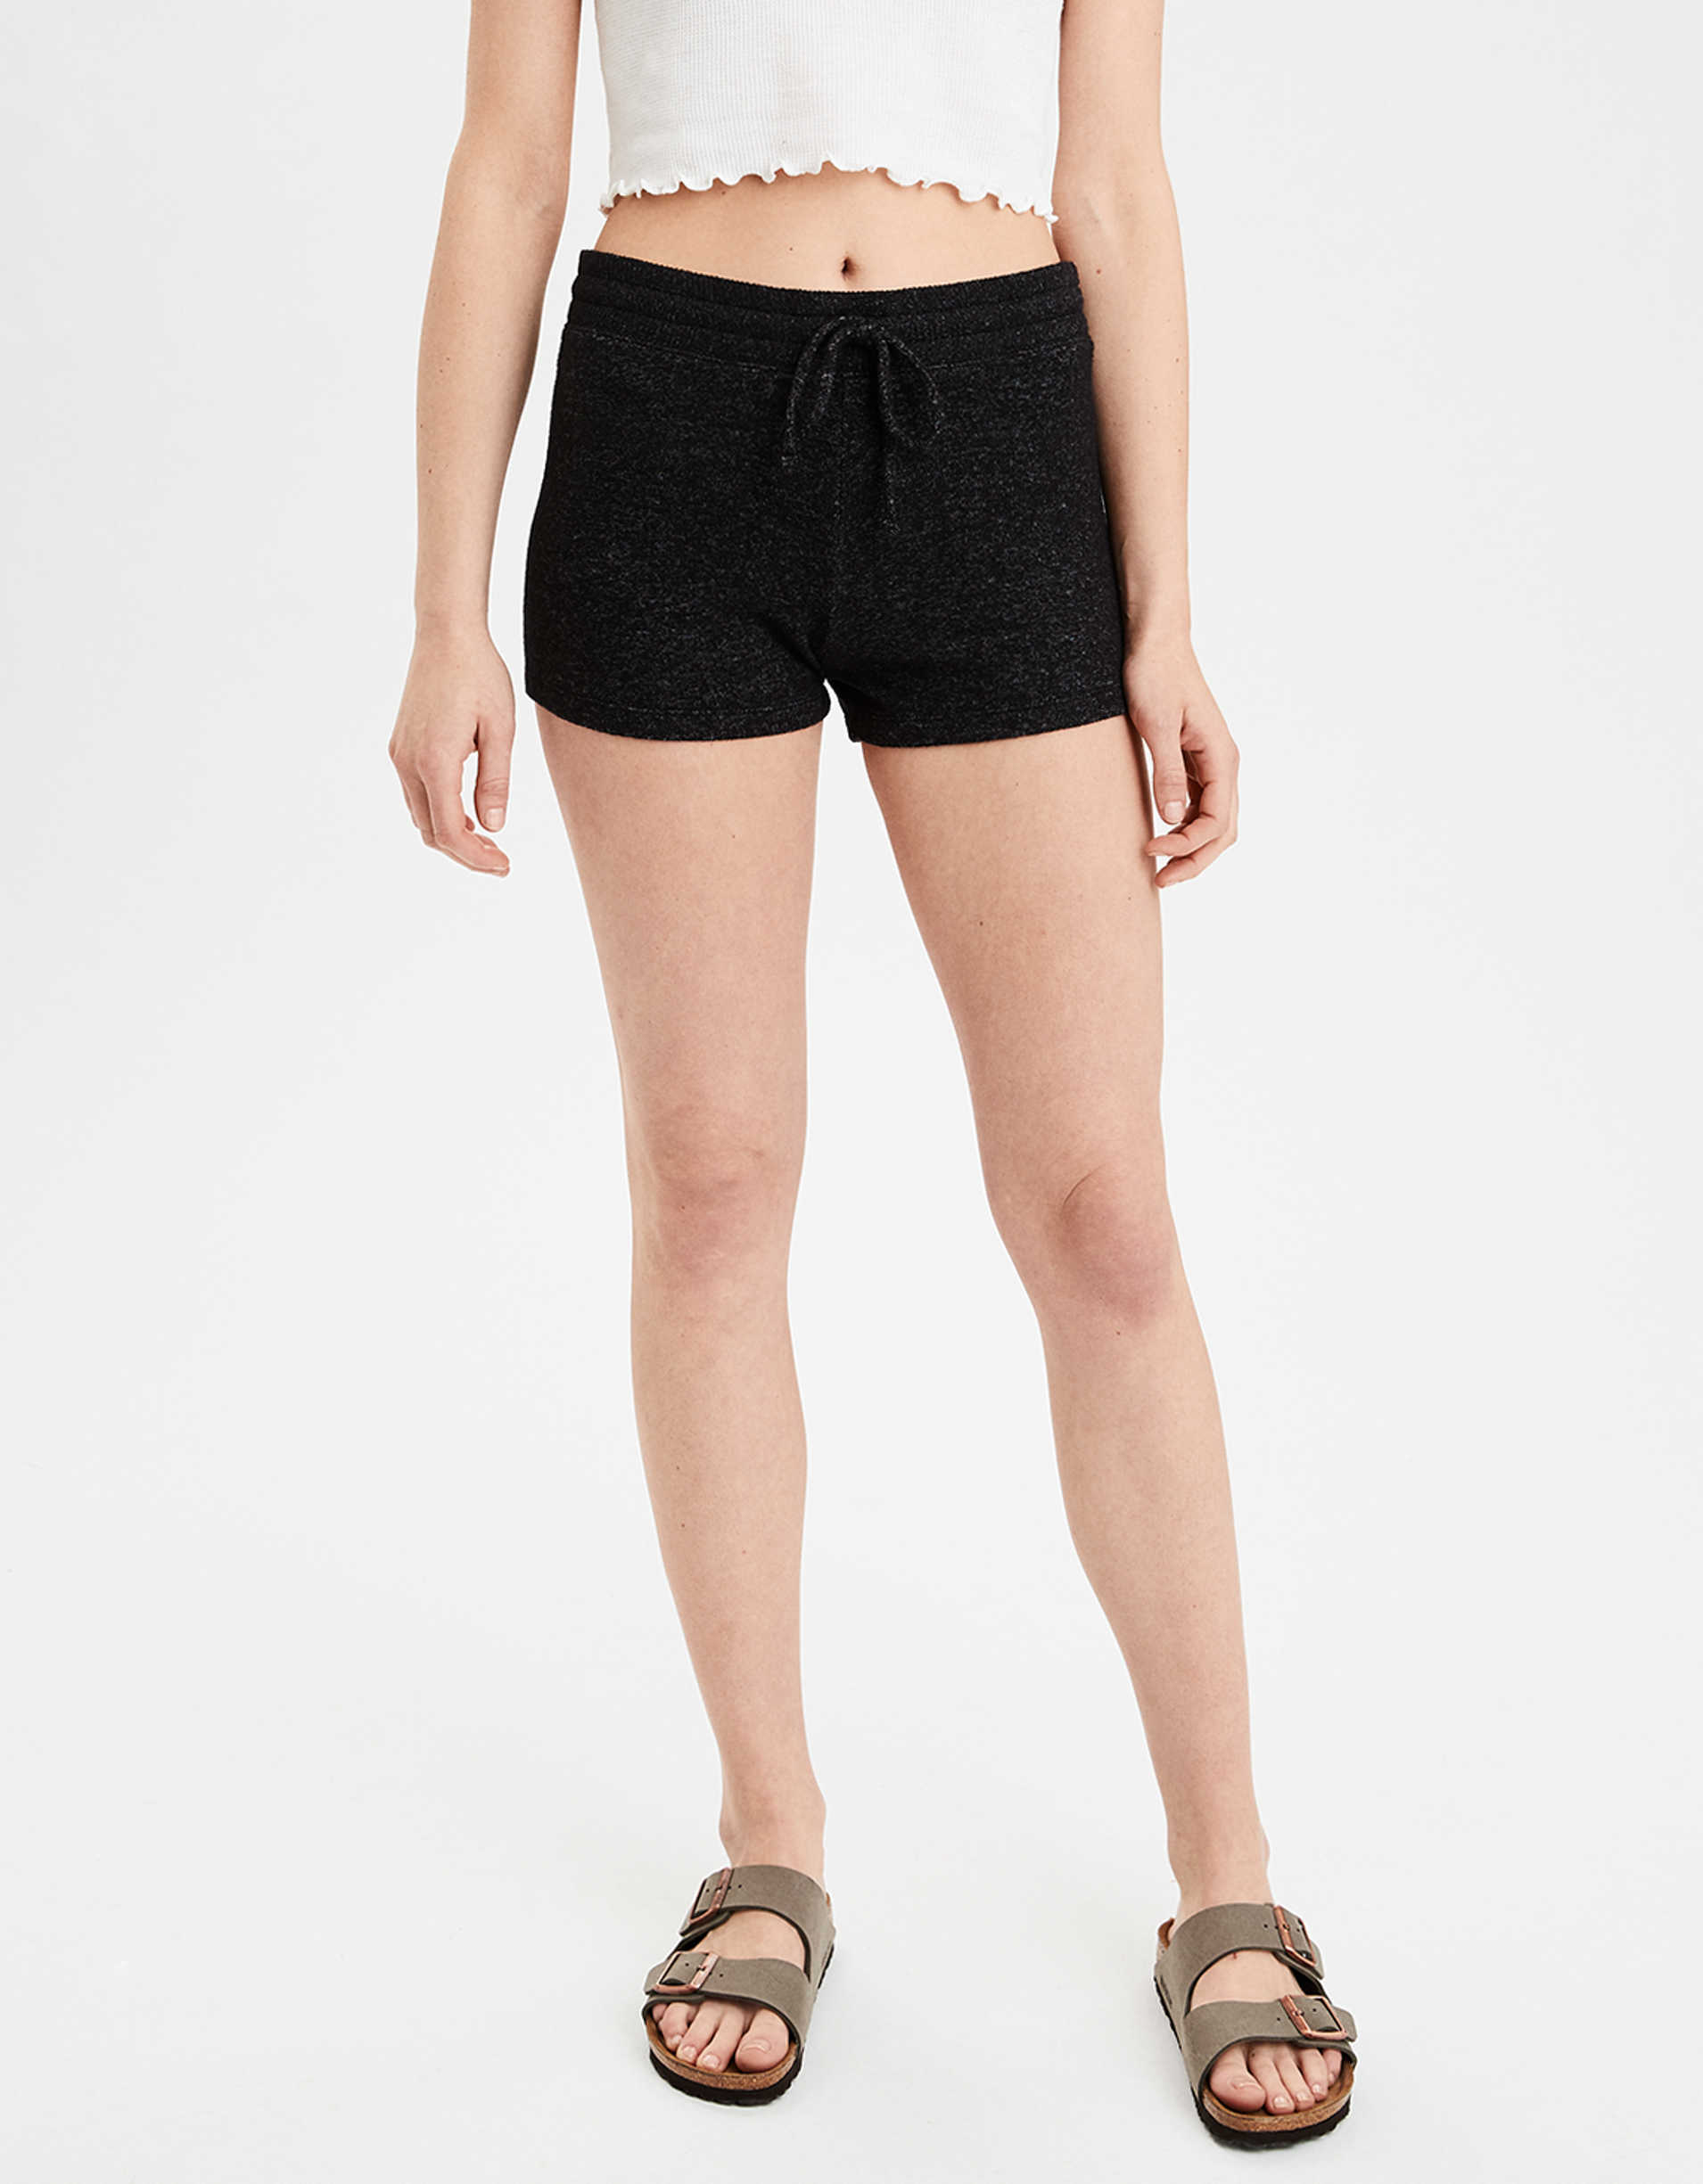 AE High-Waisted Solid Plush Shortie